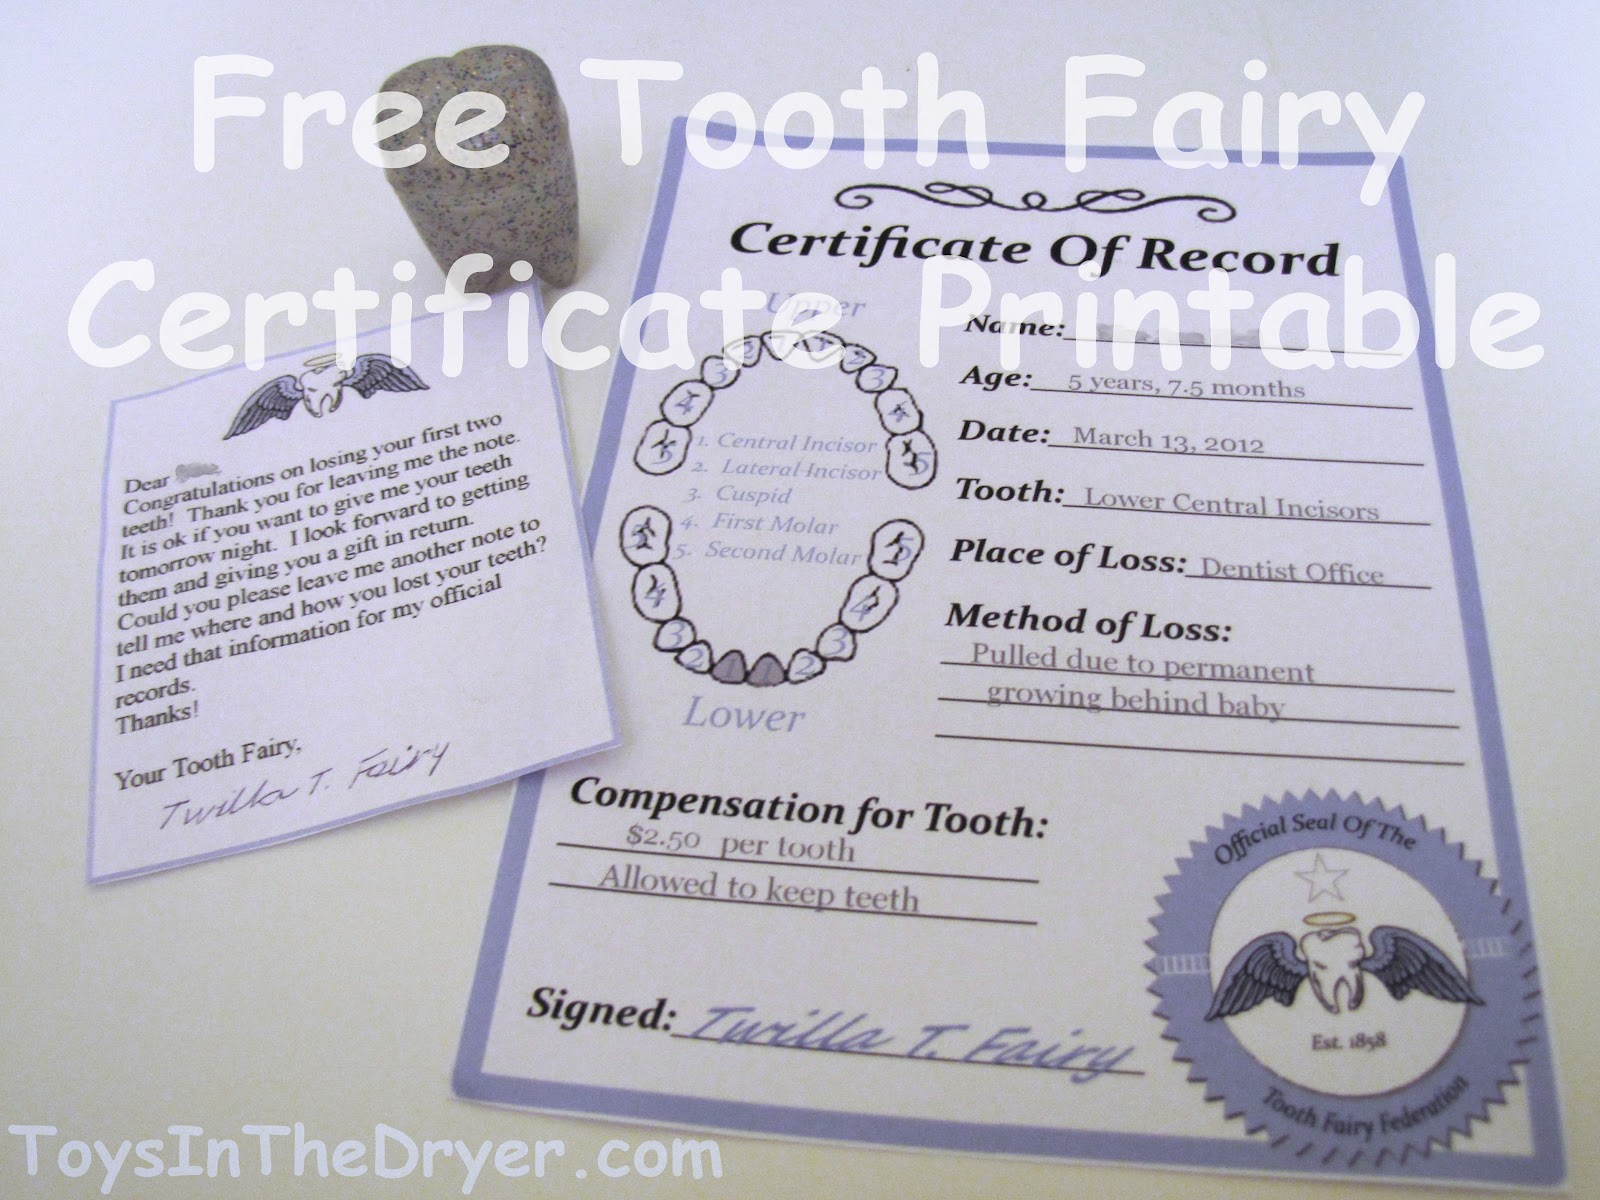 Free tooth fairy certificate tooth fairy certificate printable spiritdancerdesigns Choice Image